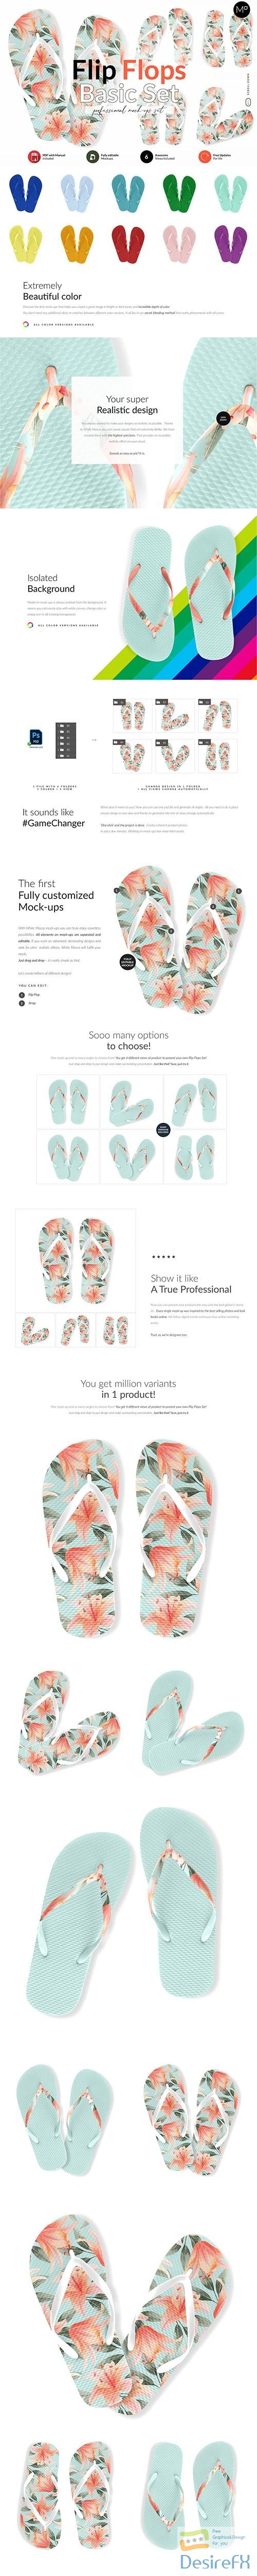 CreativeMarket - Flip Flops Basic Set Mock-ups 6018077